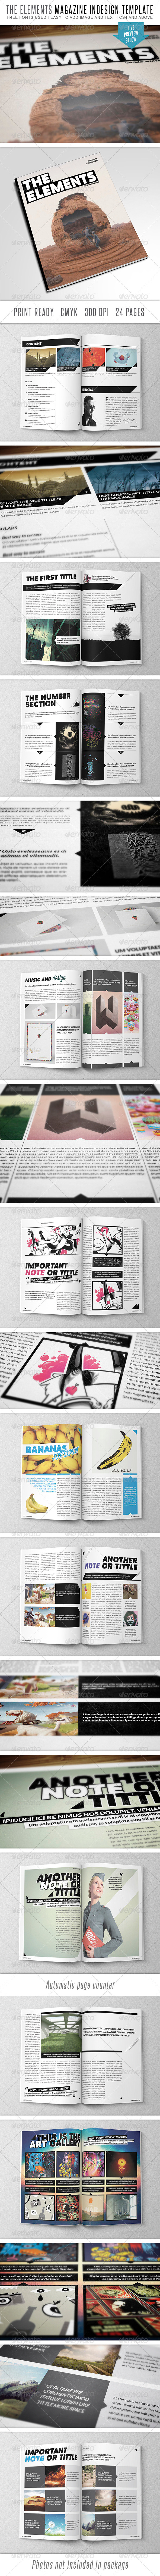 The Elements Indesign MGZ Template - Magazines Print Templates